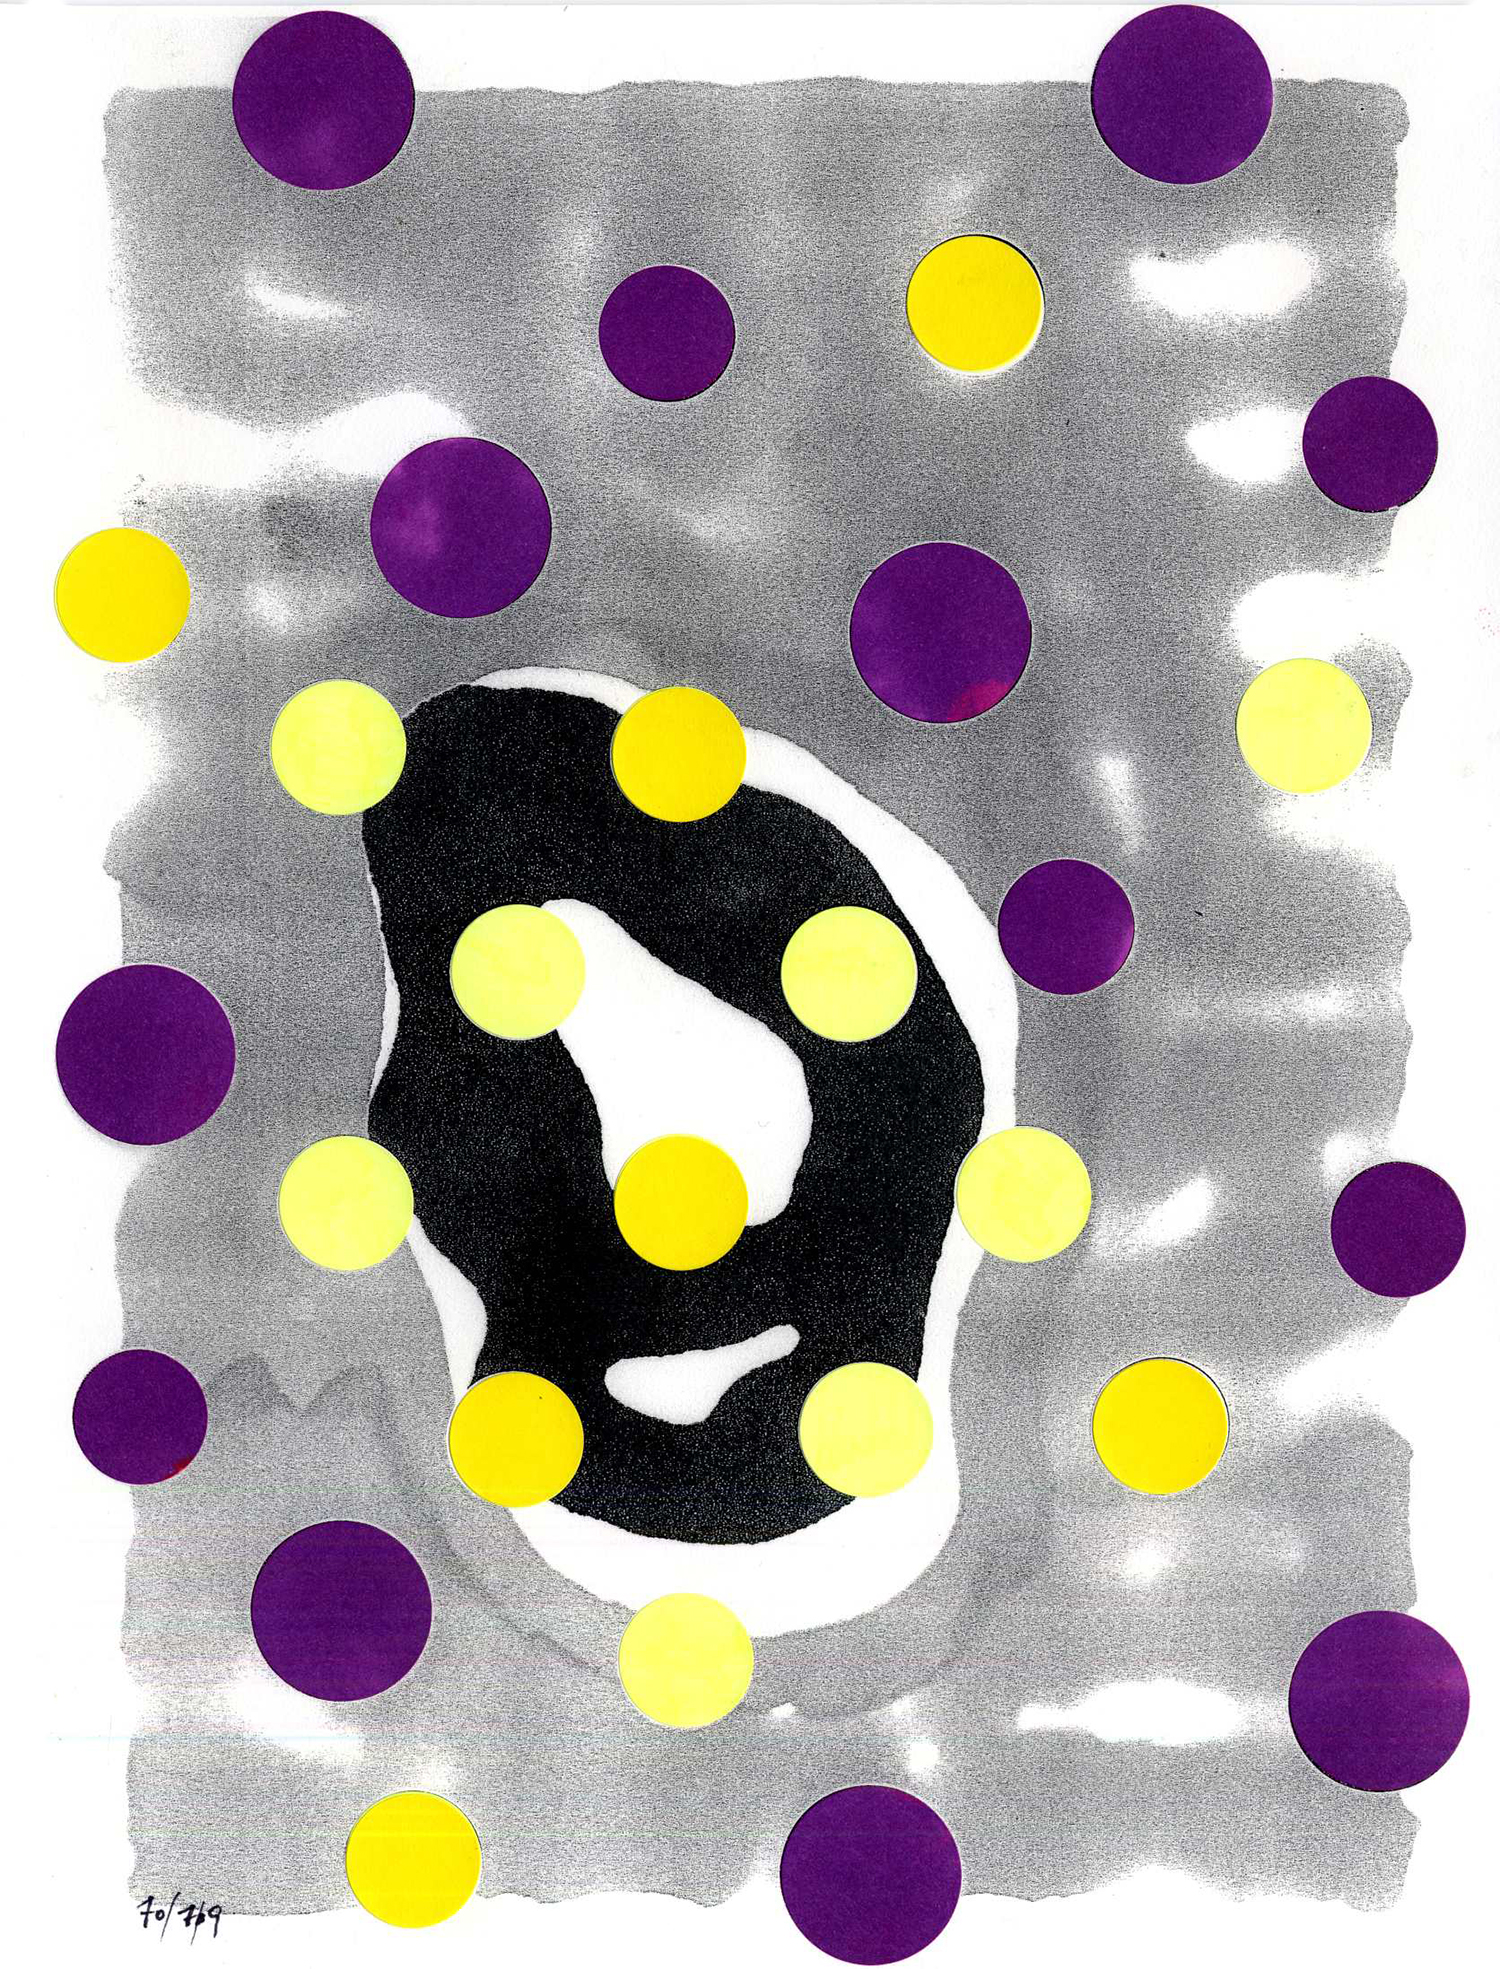 dwg09_002  , 2009, mixed media on paper, 12 x 9 in.